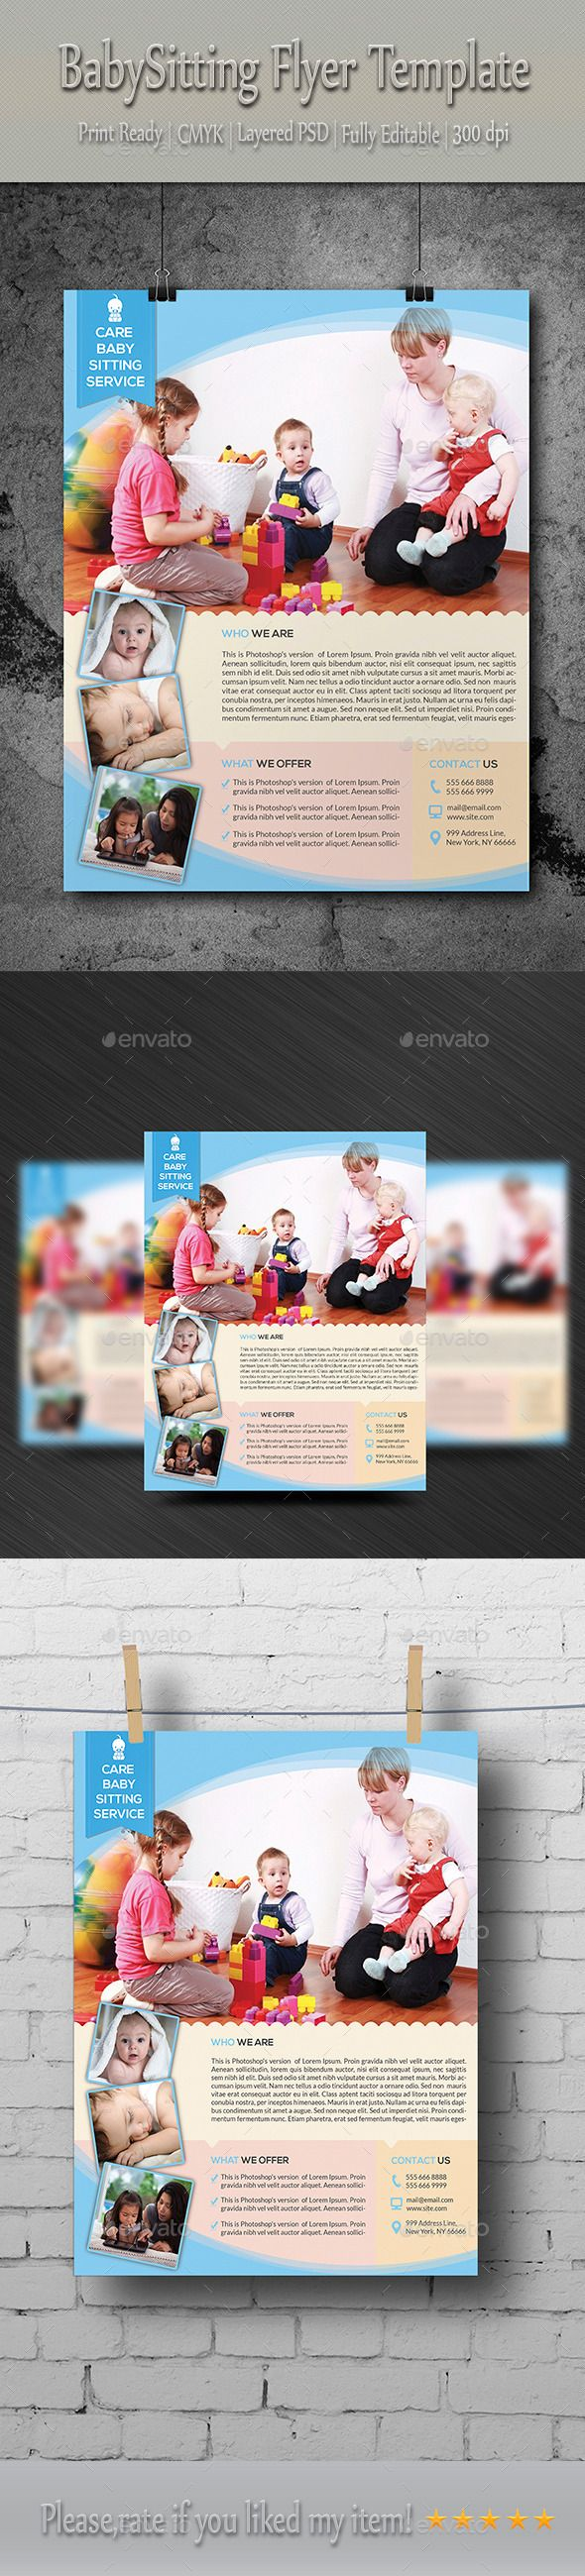 childcare and babysitting flyer template design babysitting daycare flyer template